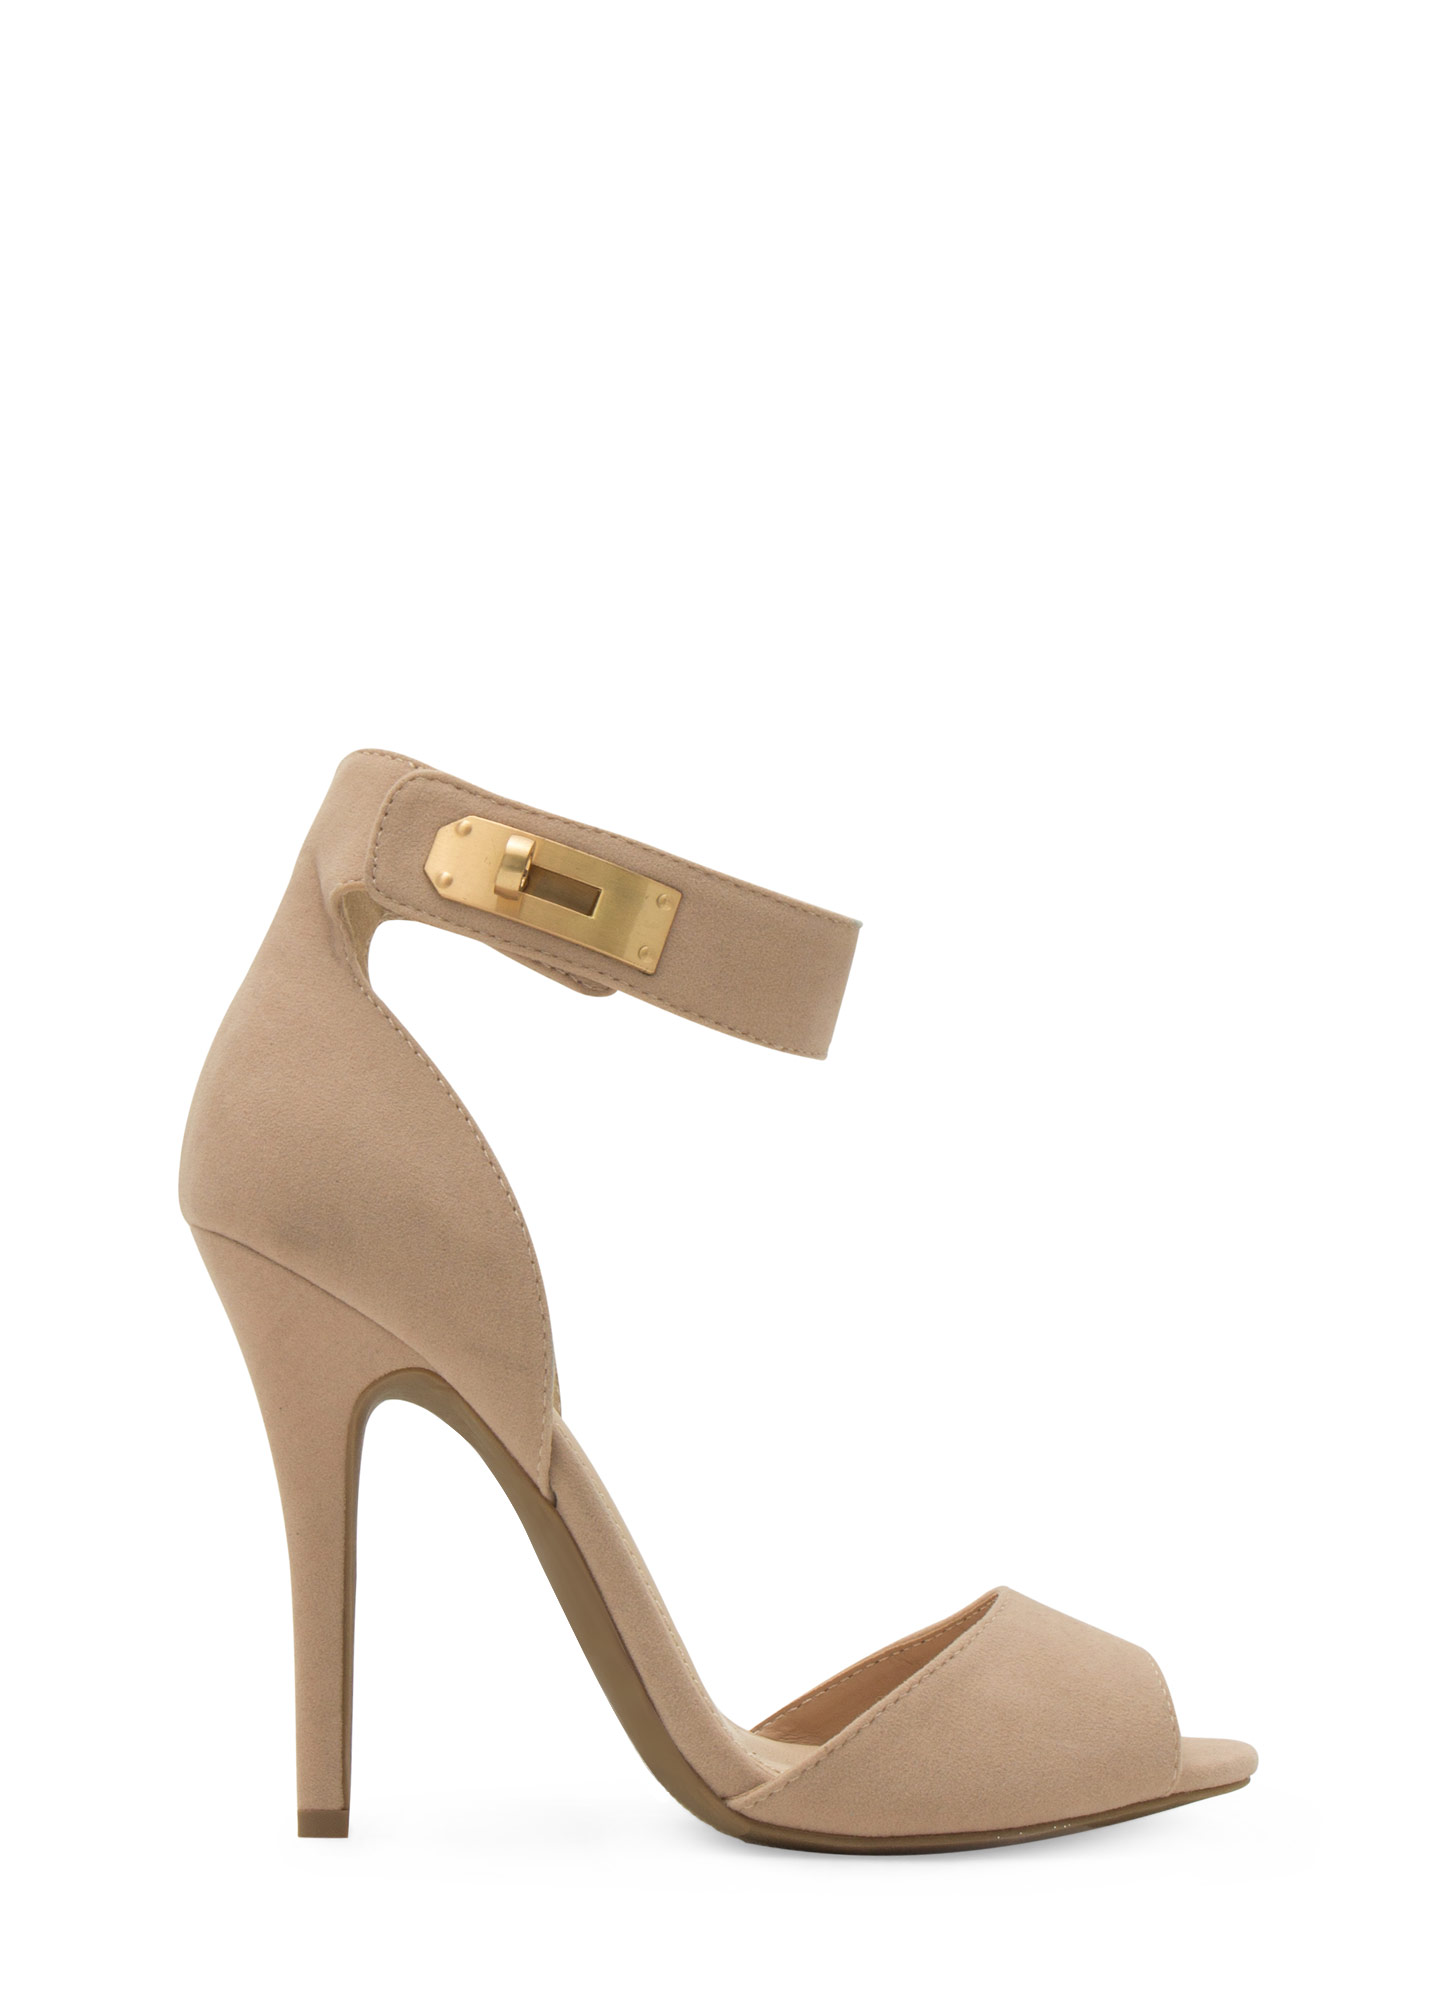 Twist Lock Me Up Ankle Strap Heels NUDE